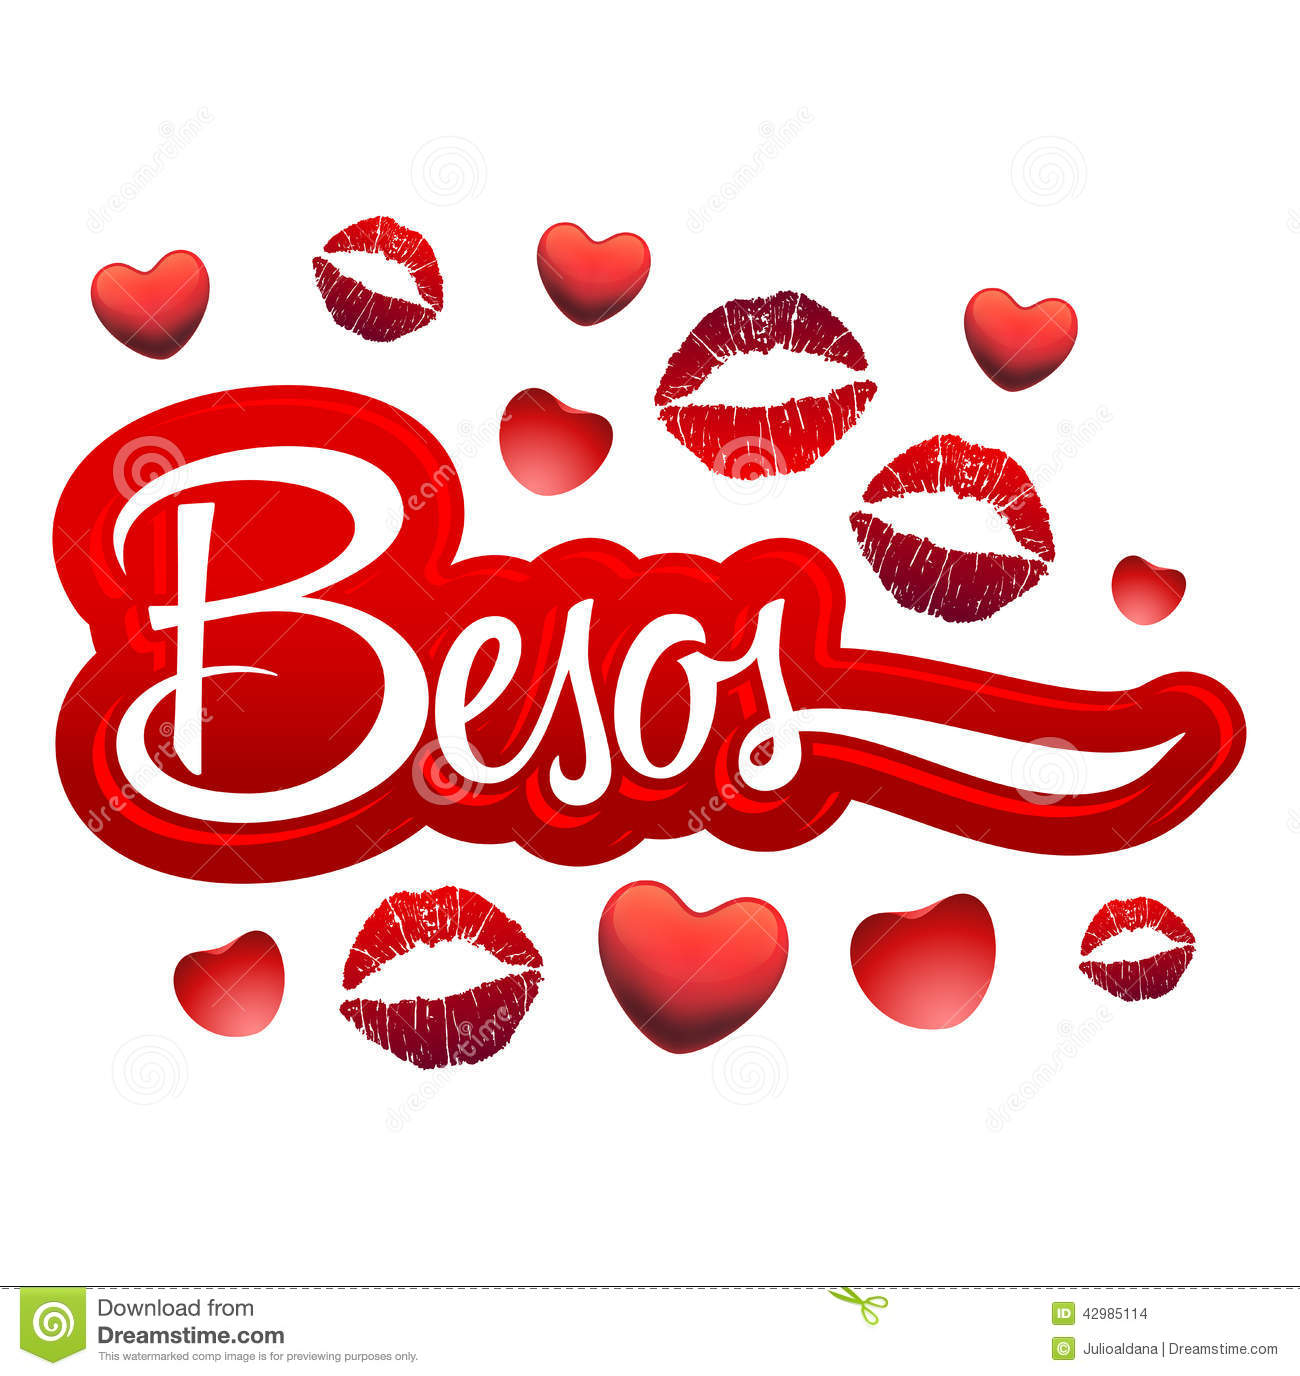 Besitos Romanticosricos Mmmm Para Ti